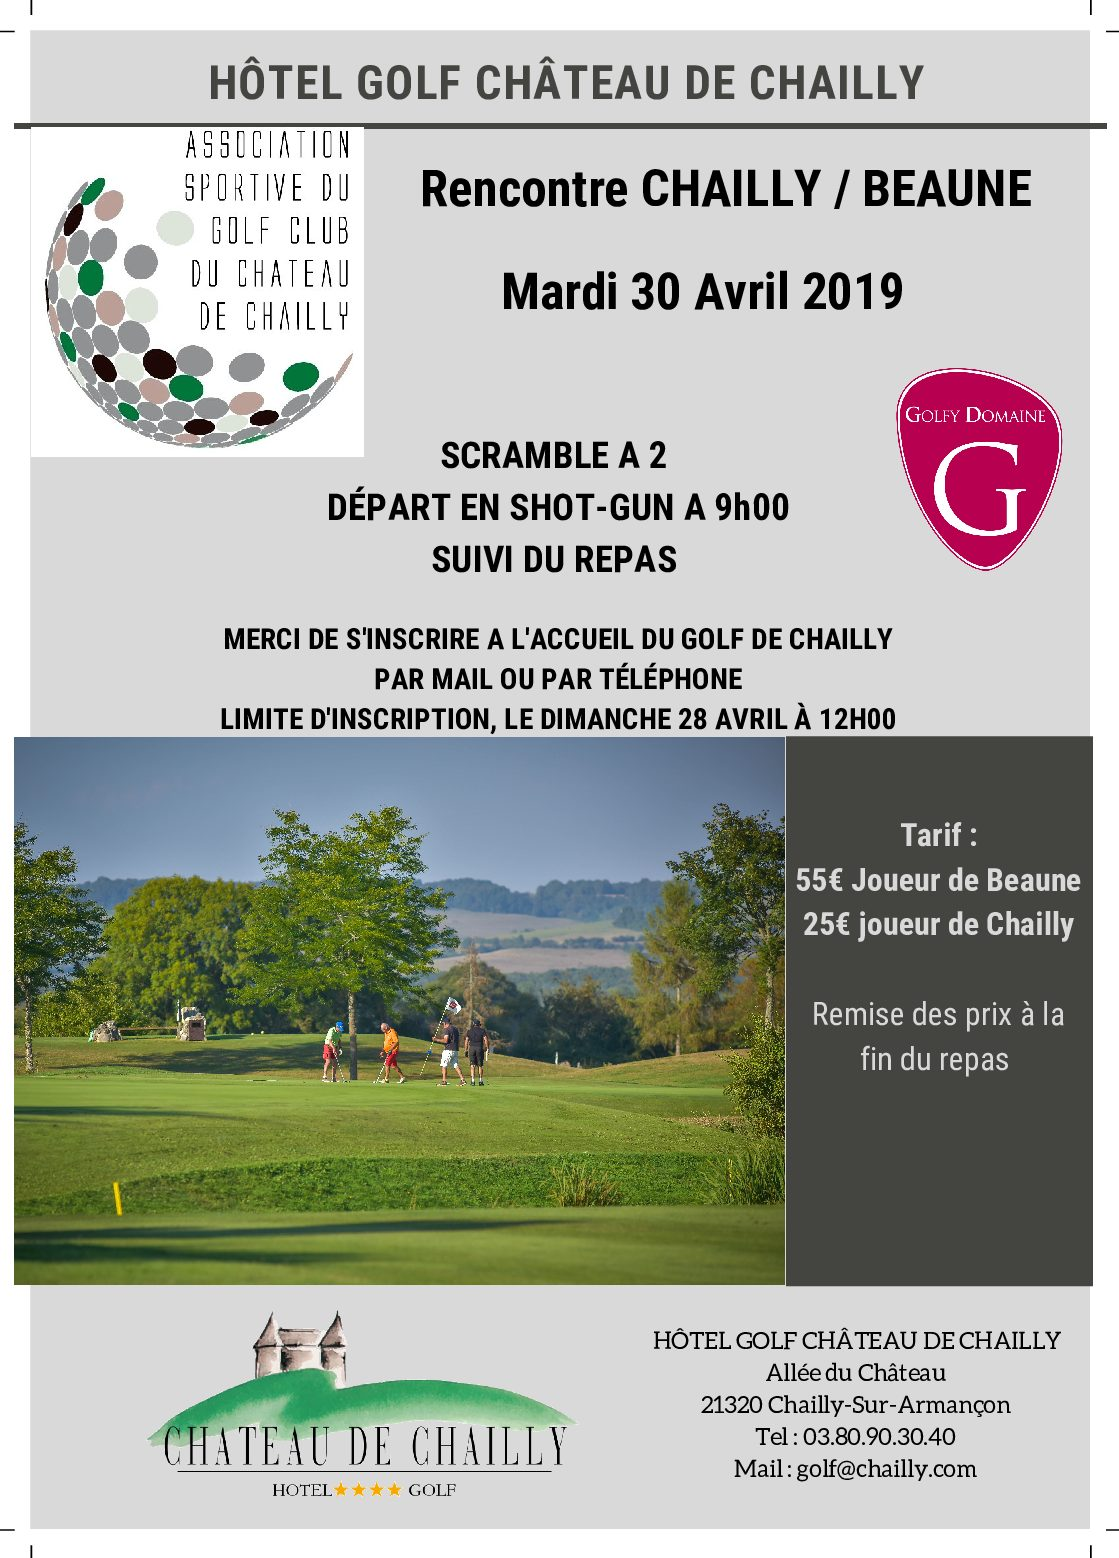 Rencontre Inter-clubs Chailly-Beaune (30 avril 2019)